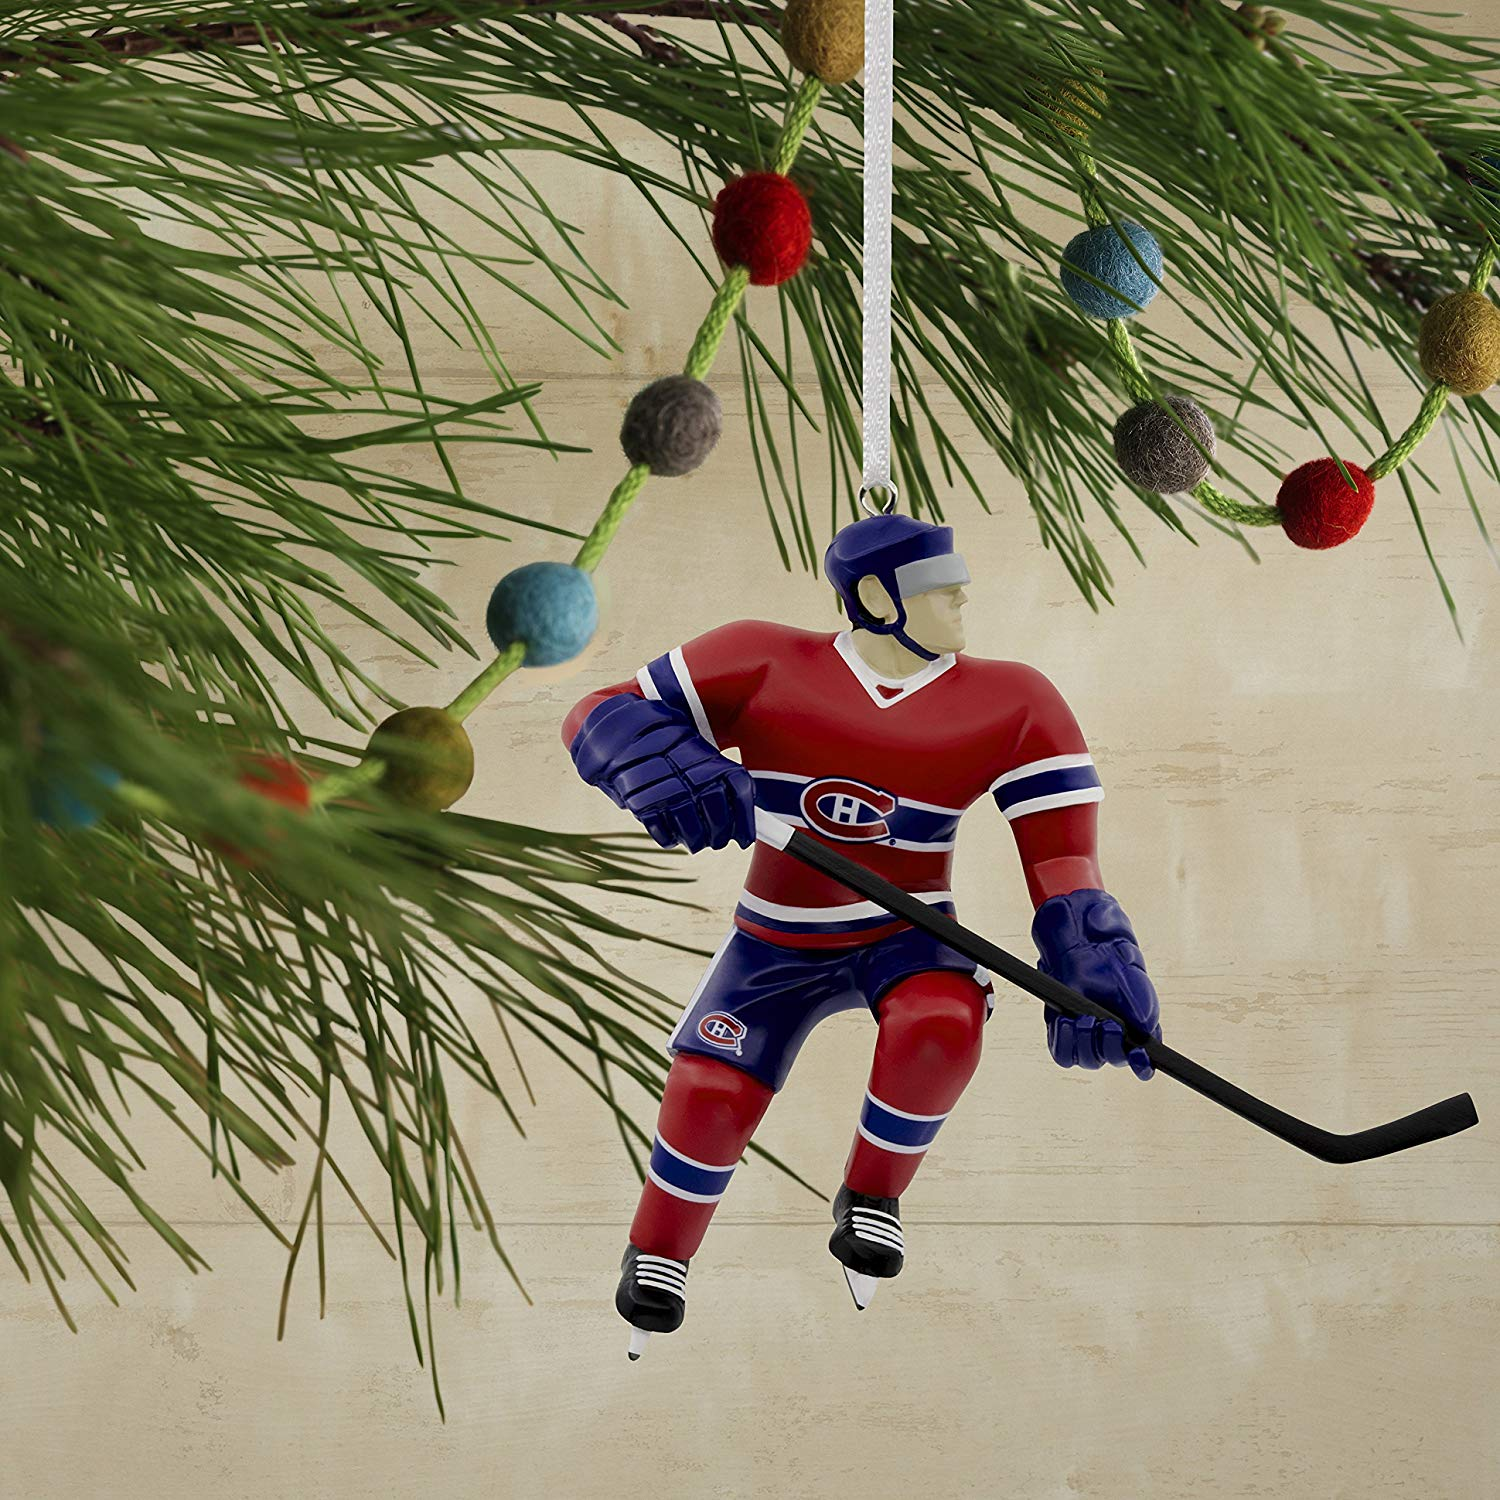 NHL Montreal Canadiens Hallmark Ornament - Sons of Hockey